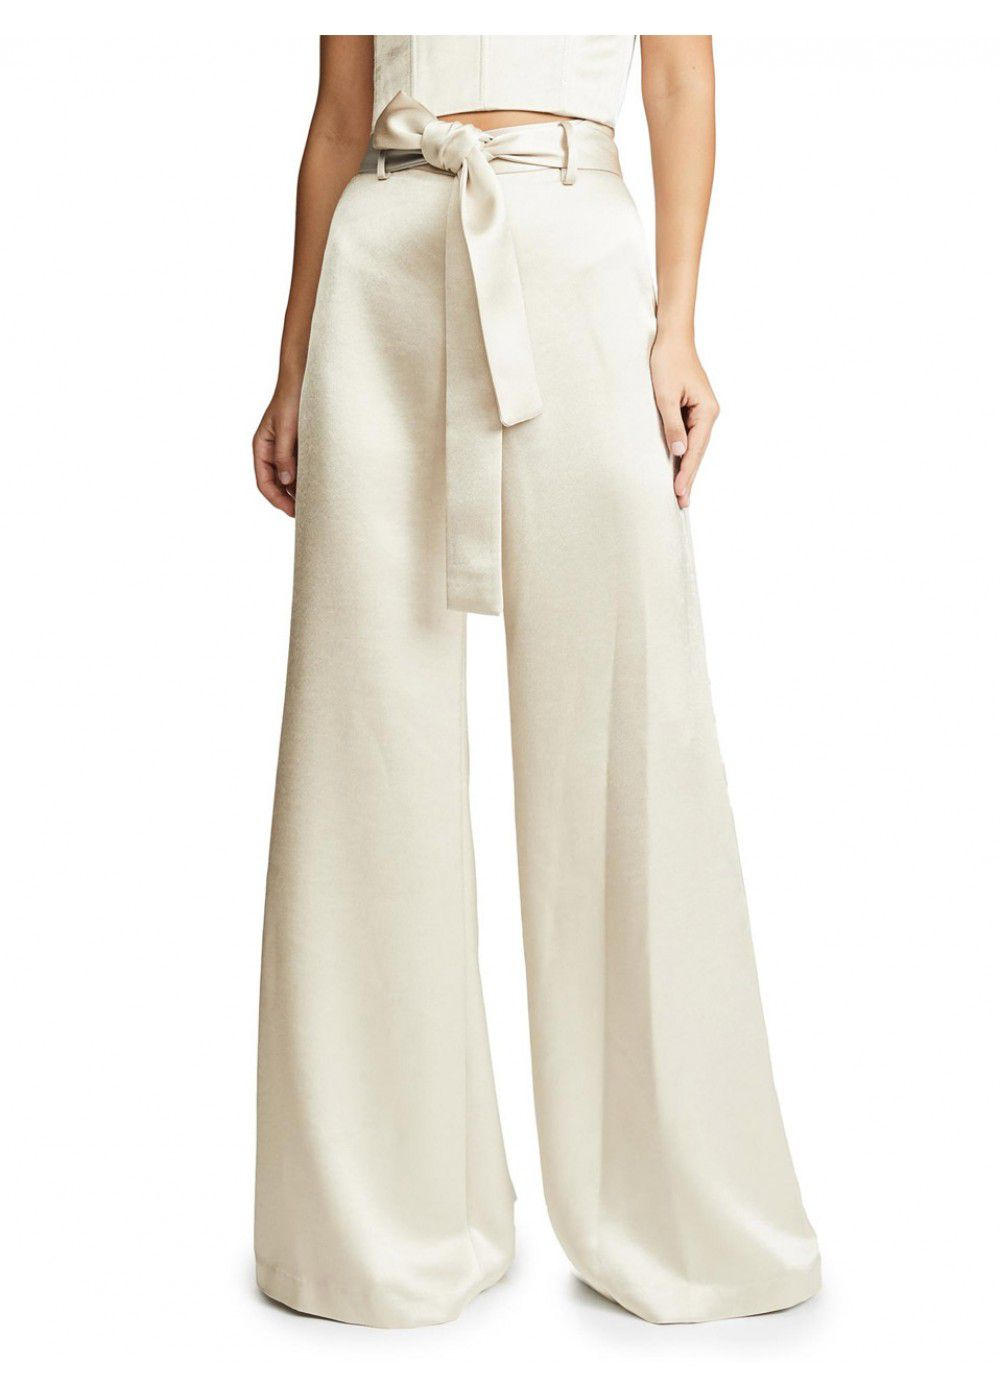 Alexis Nerissa Pants in Alabaster